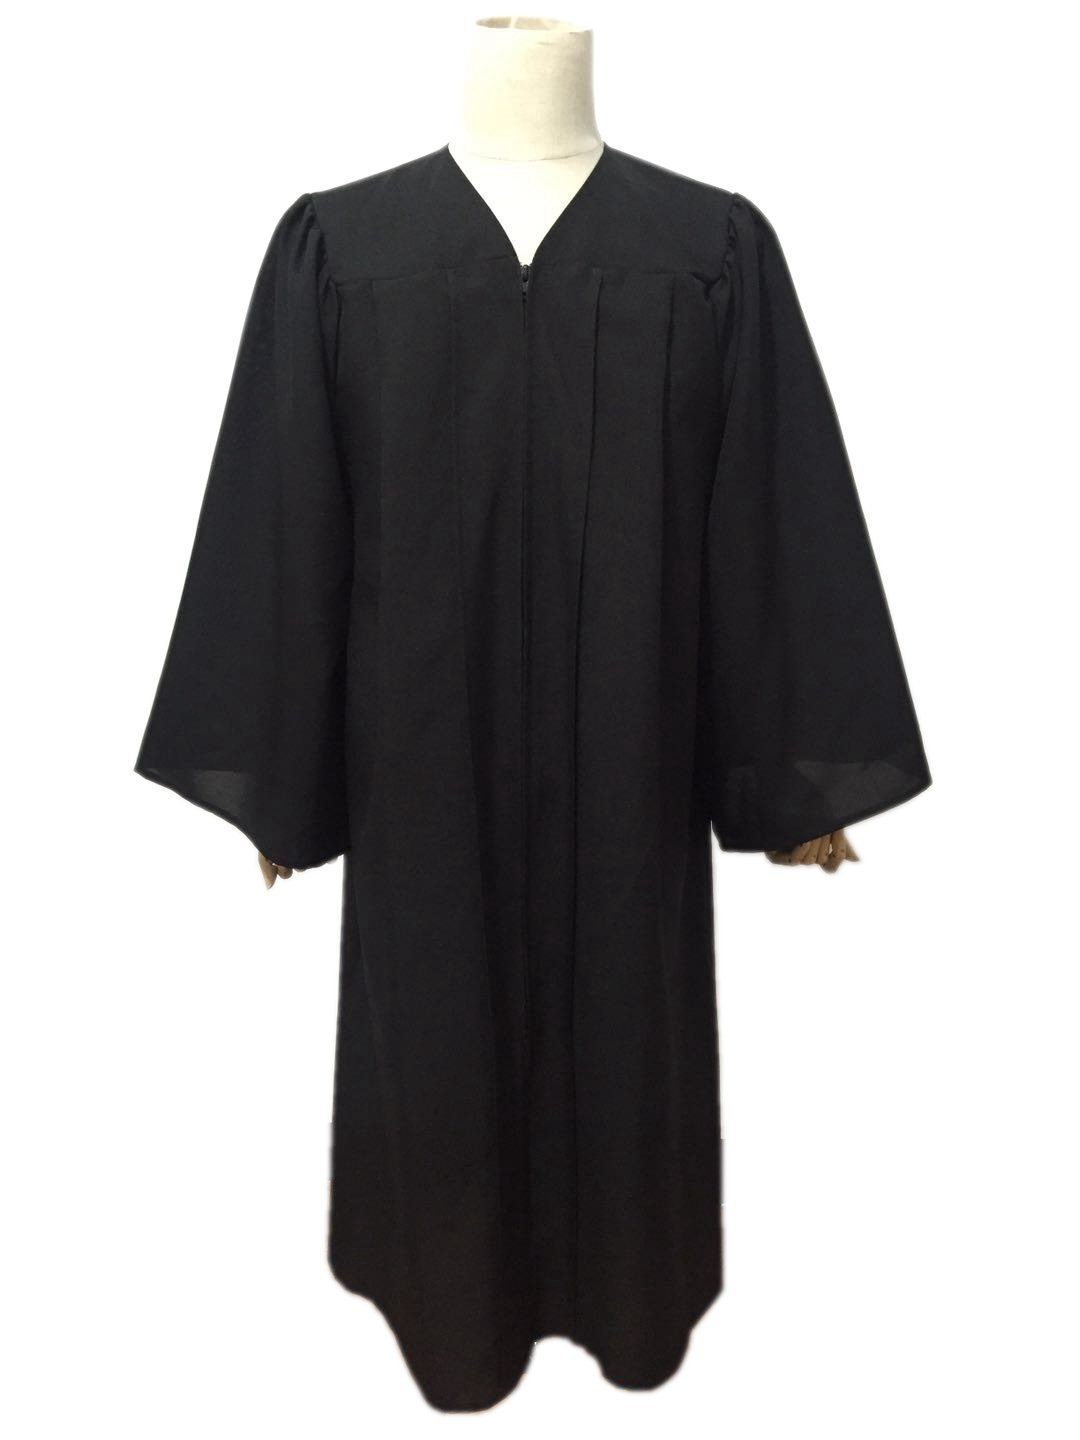 Leishungao Adult Black Choir Robe Matte Finish for Choir Clergy ReligiousWearing Height 5'9''-5'11''FF by Leishungao (Image #4)